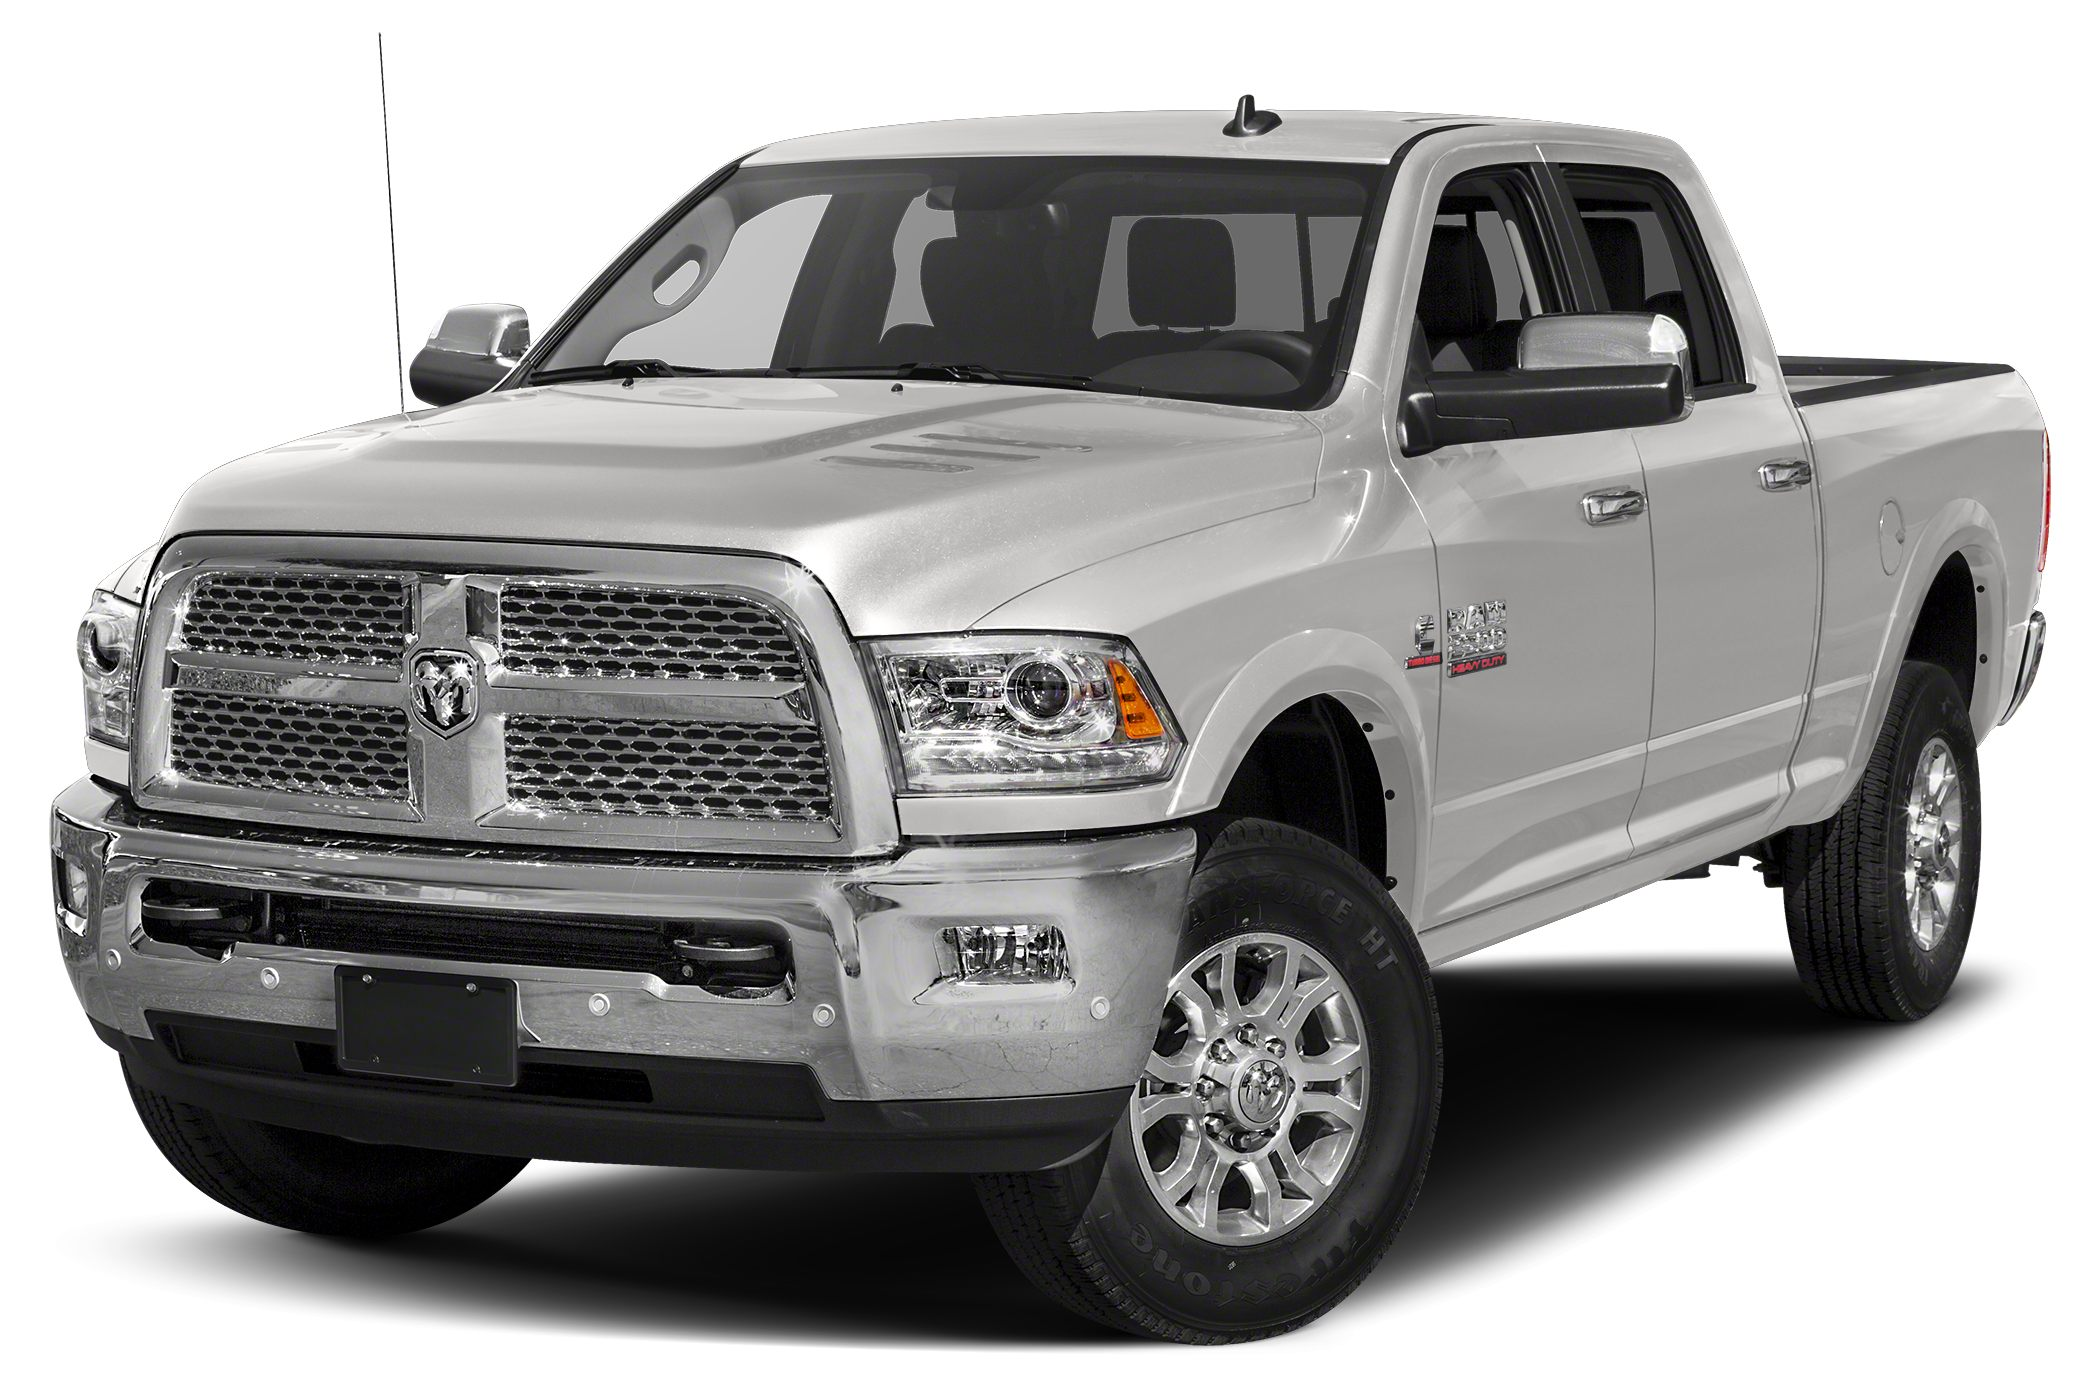 2017 RAM 2500 Laramie Isnt it time for a RAM You win New Arrival This functional Vehicle